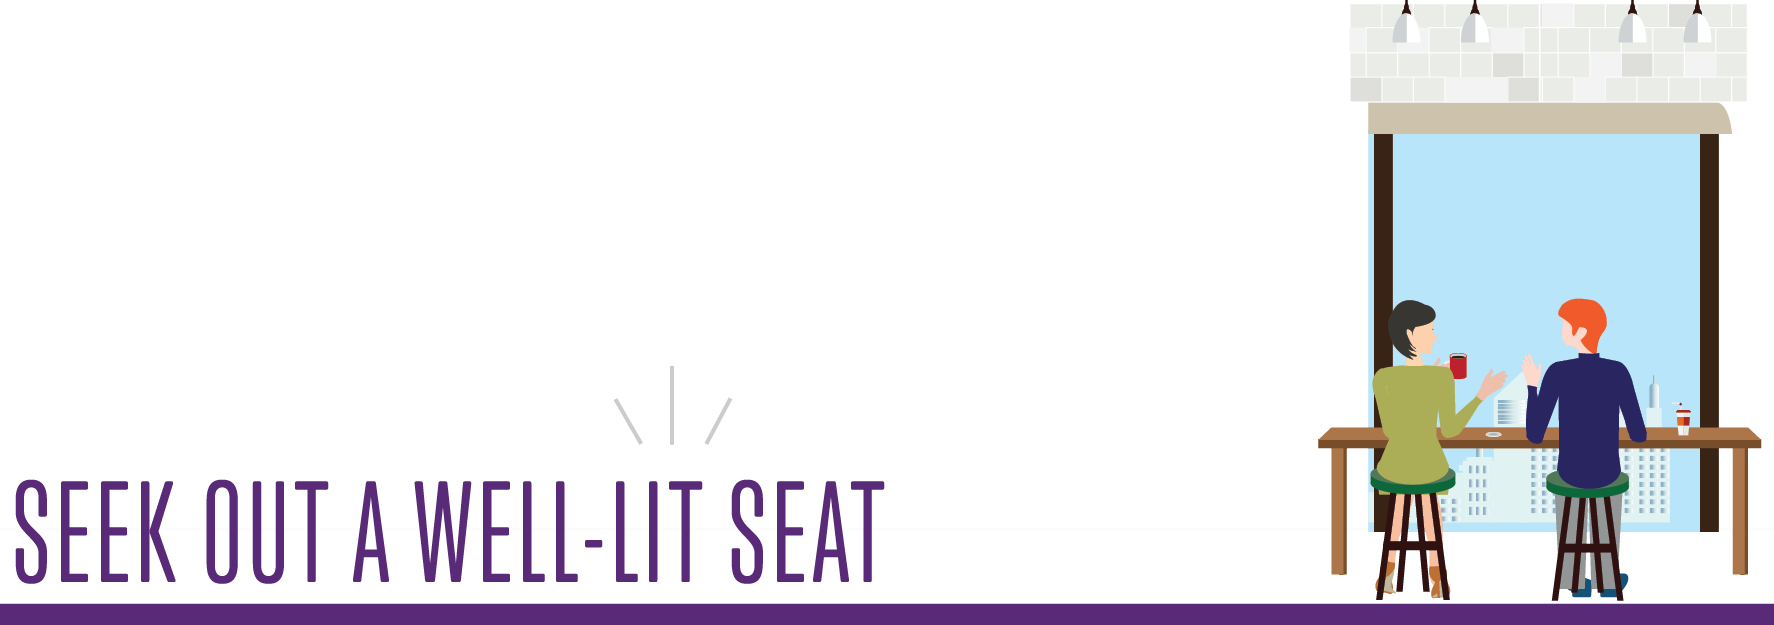 Seek out a well-lit seat